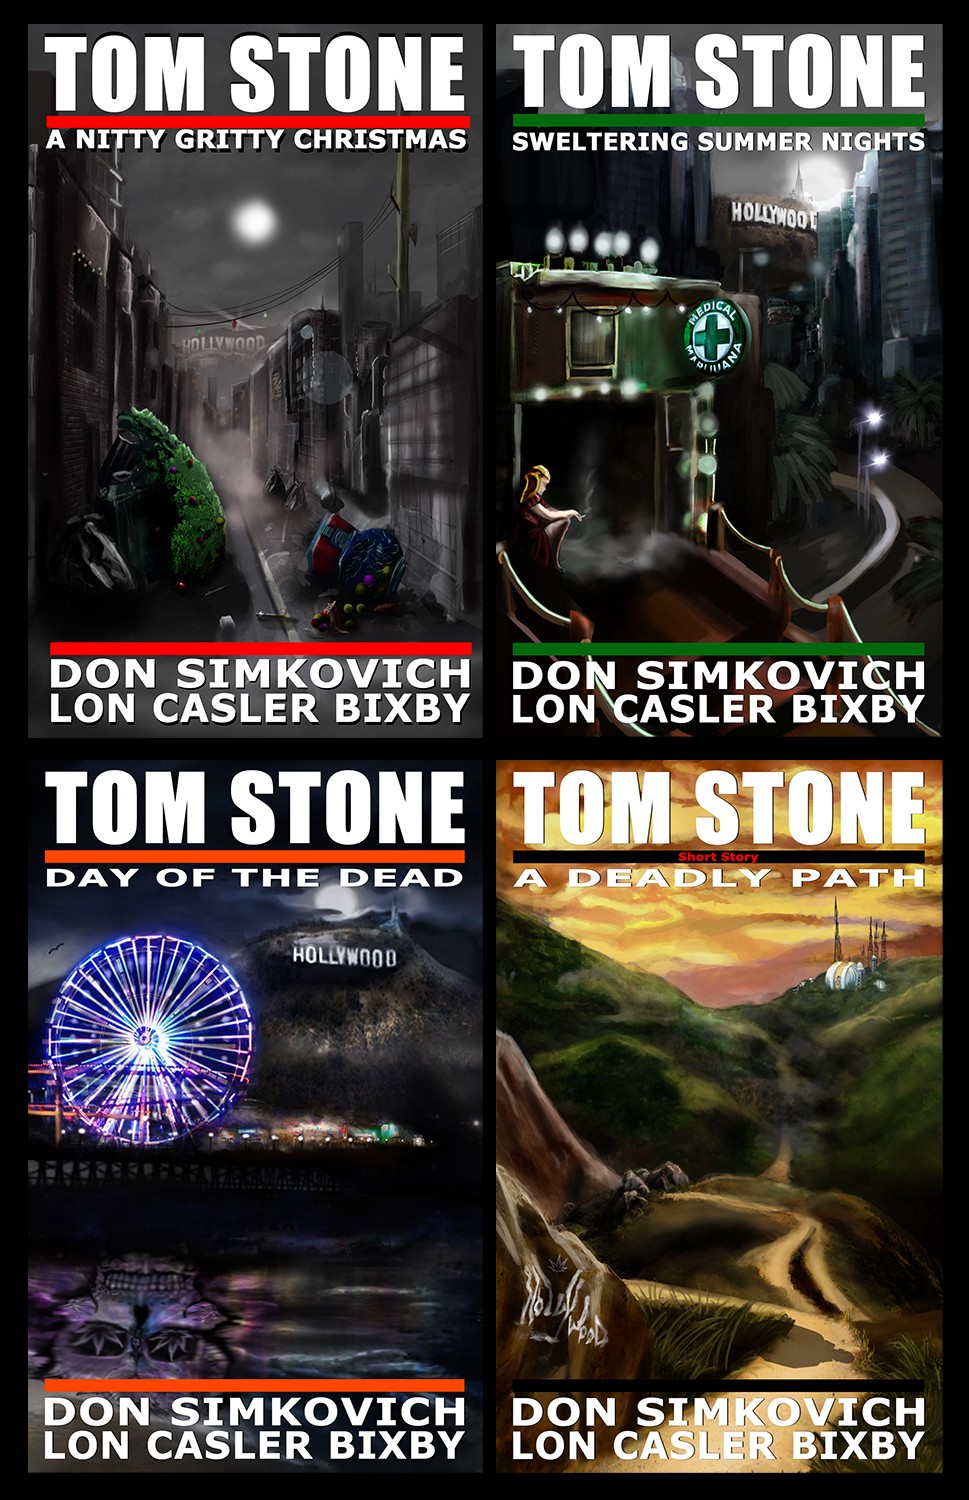 Covers for Tom Stone novels and short story.